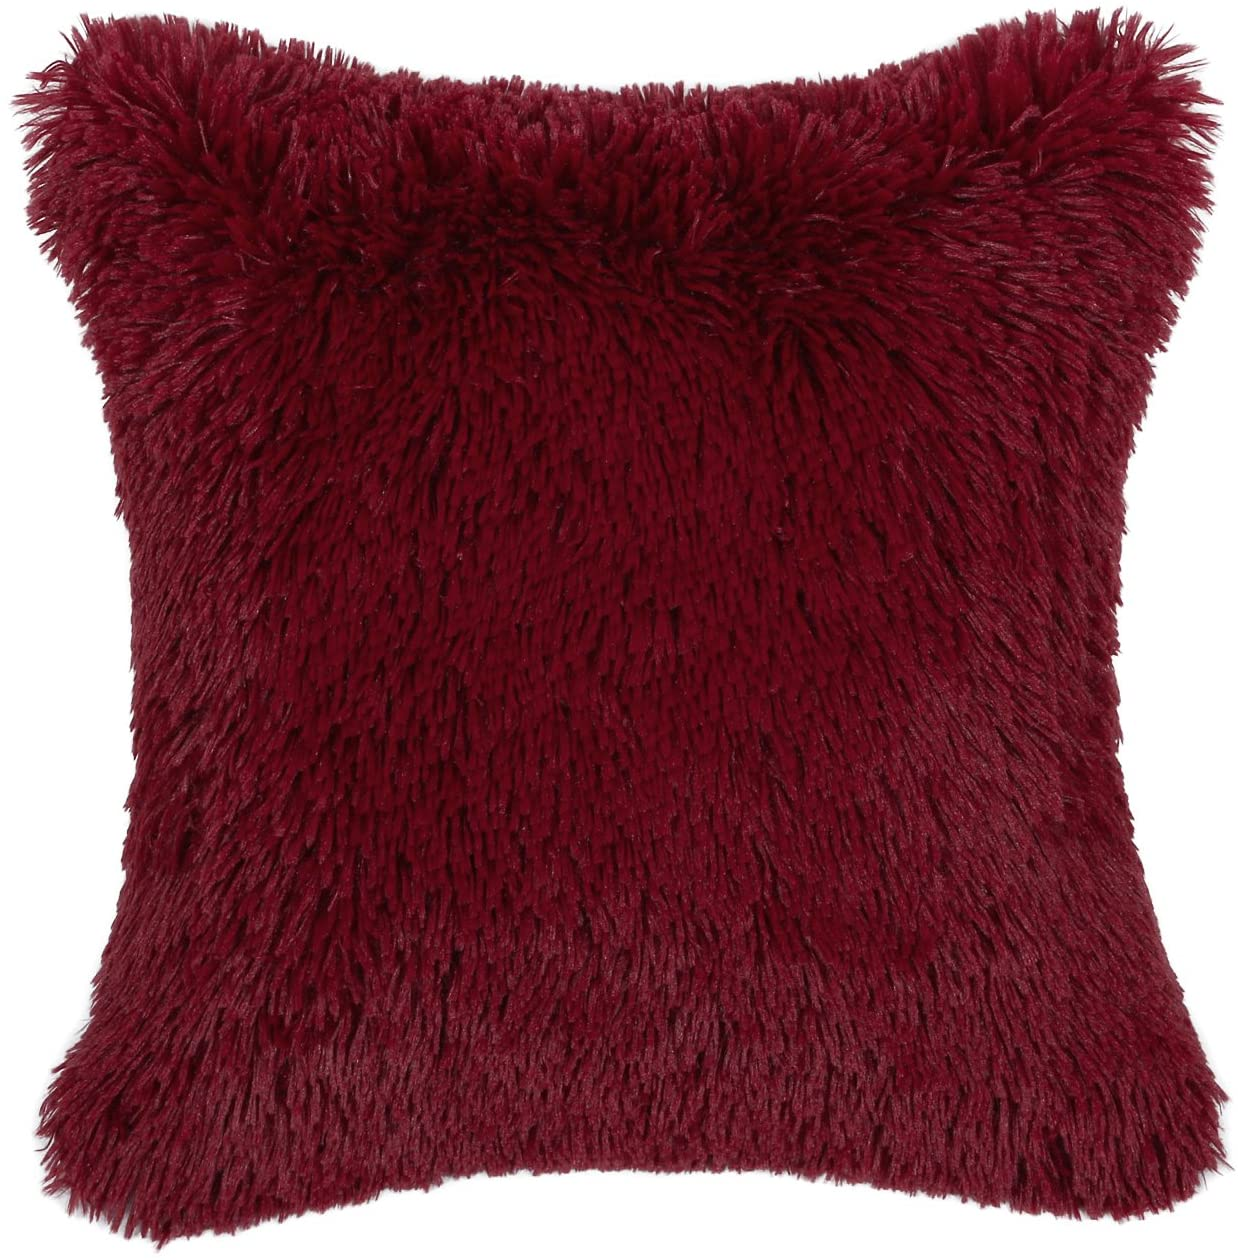 CaliTime Super Soft Throw Pillow Cover Case for Couch Sofa Bed Solid Plush Faux Fur 18 X 18 Inches Burgundy